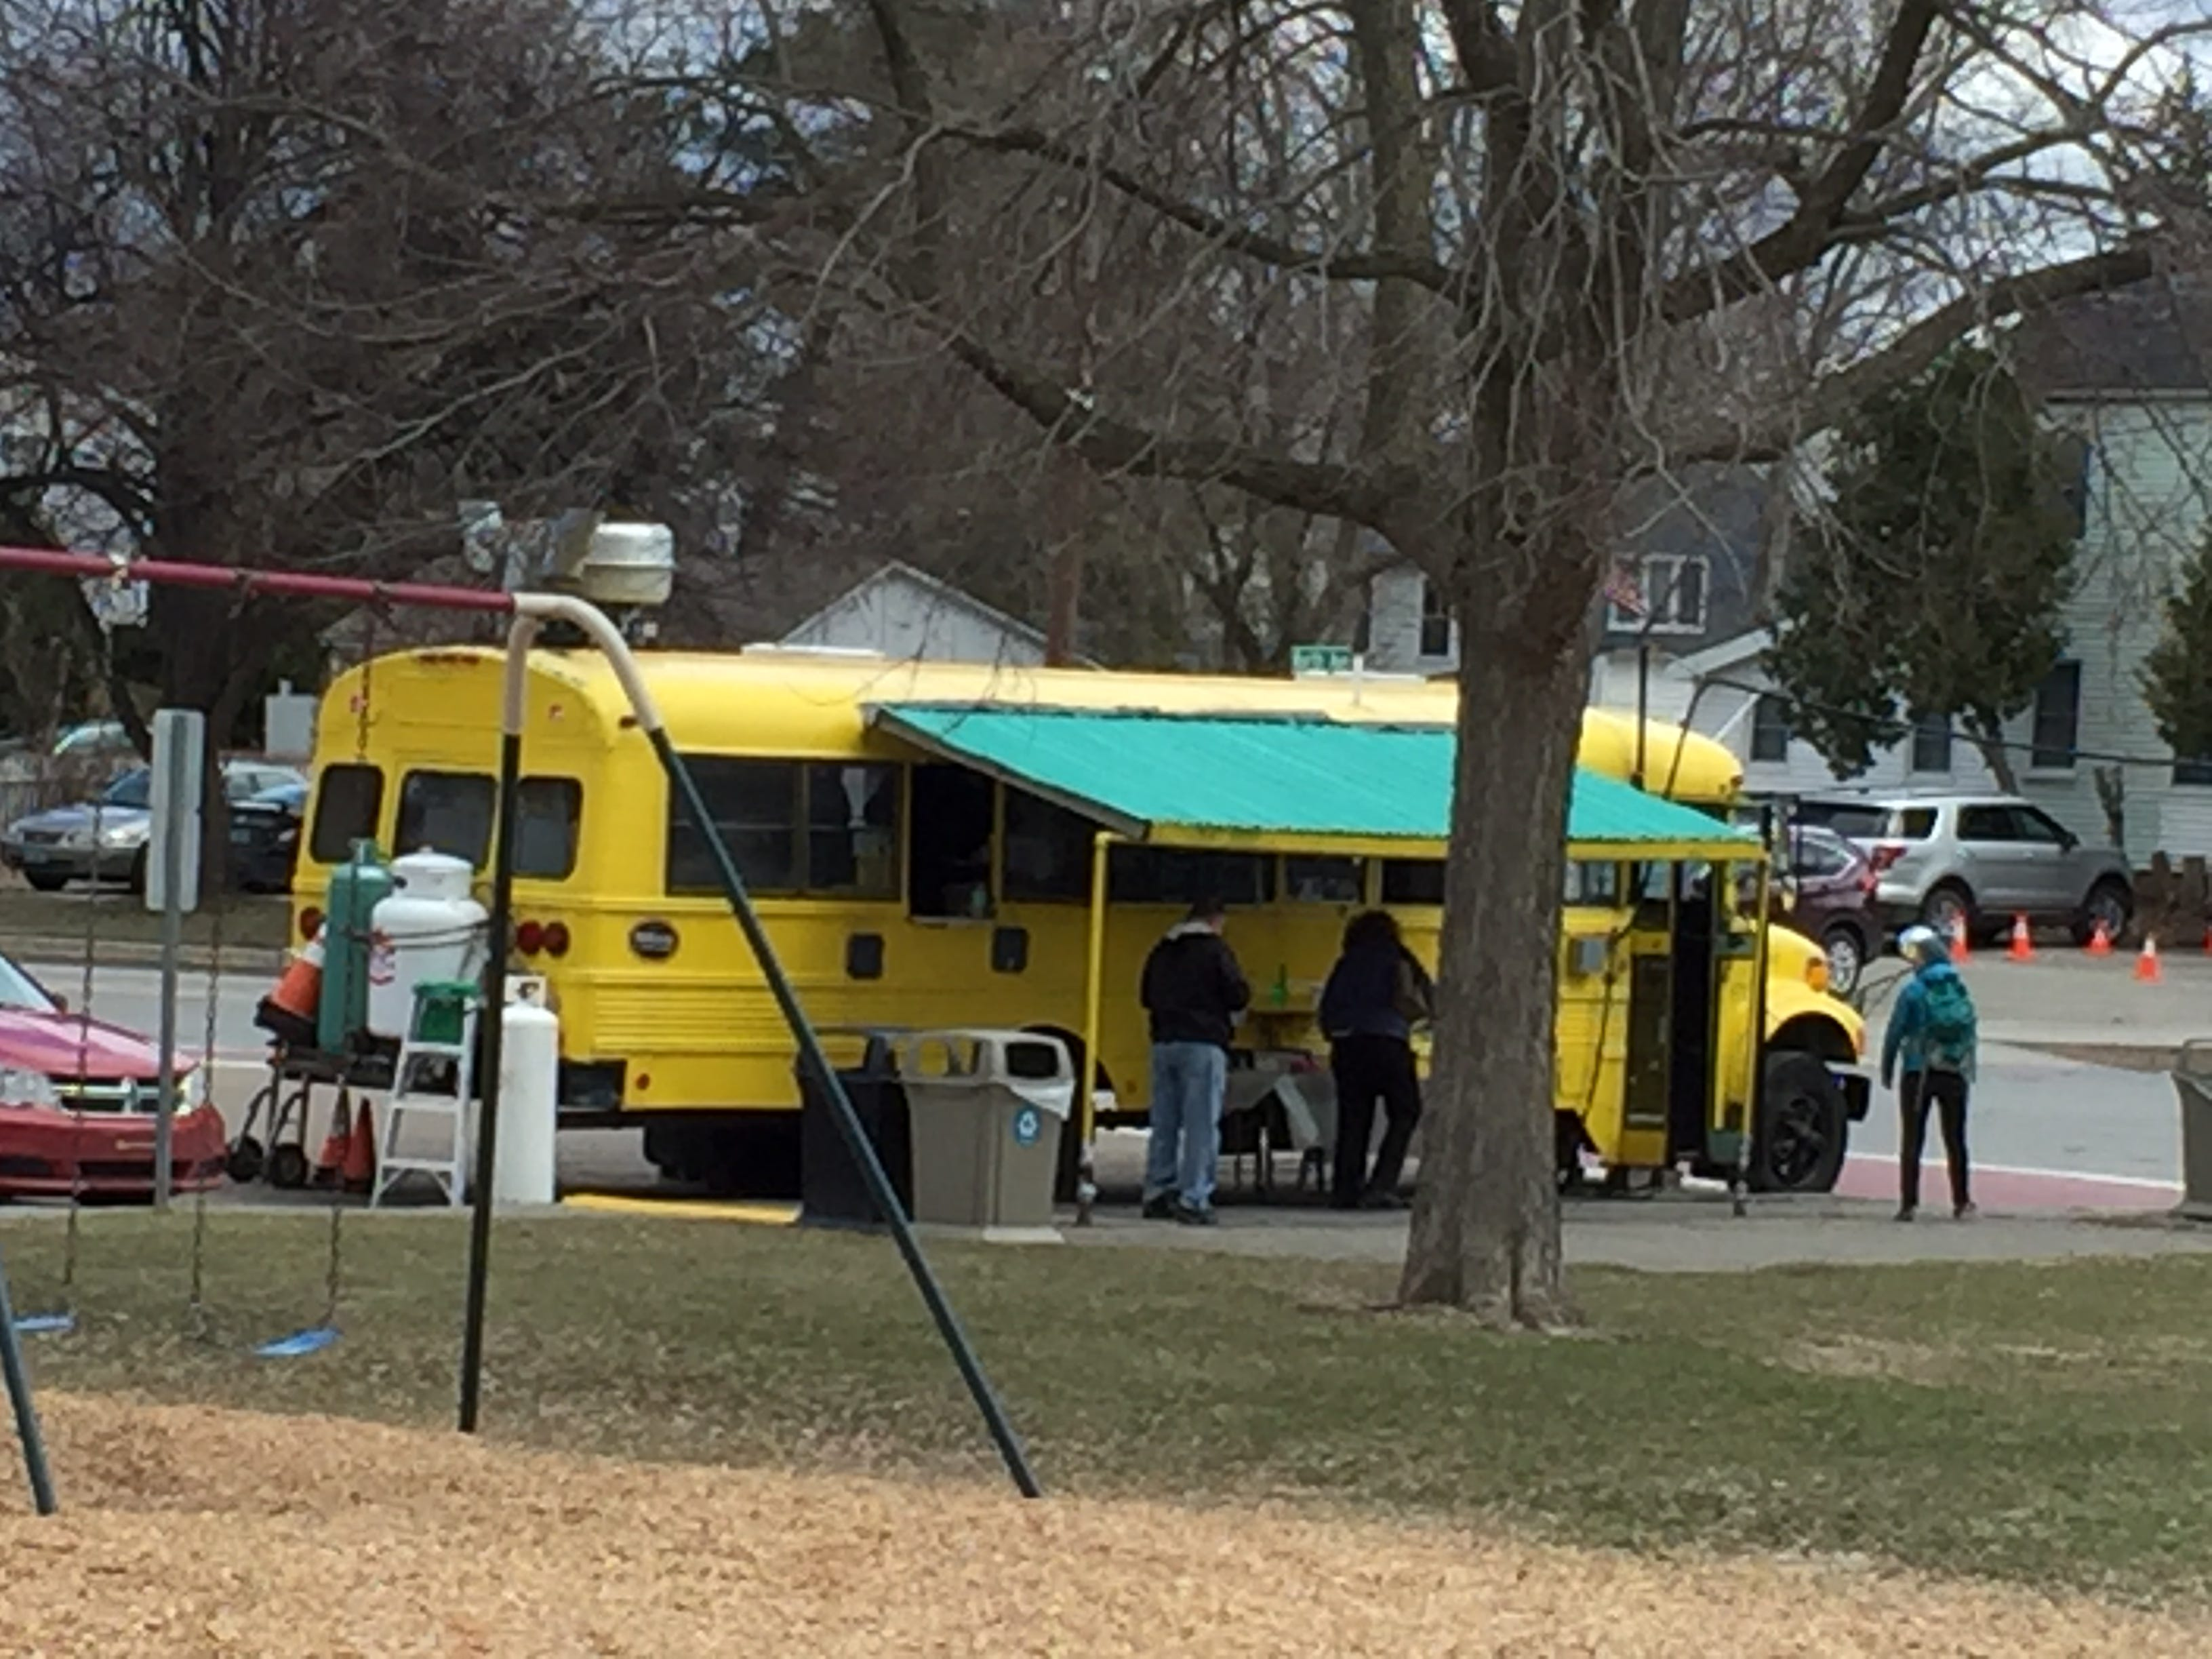 Beansie's Bus returned April 16, 2019 to its regular spot at the northern edge of Battery Park near the Burlington Police Department.